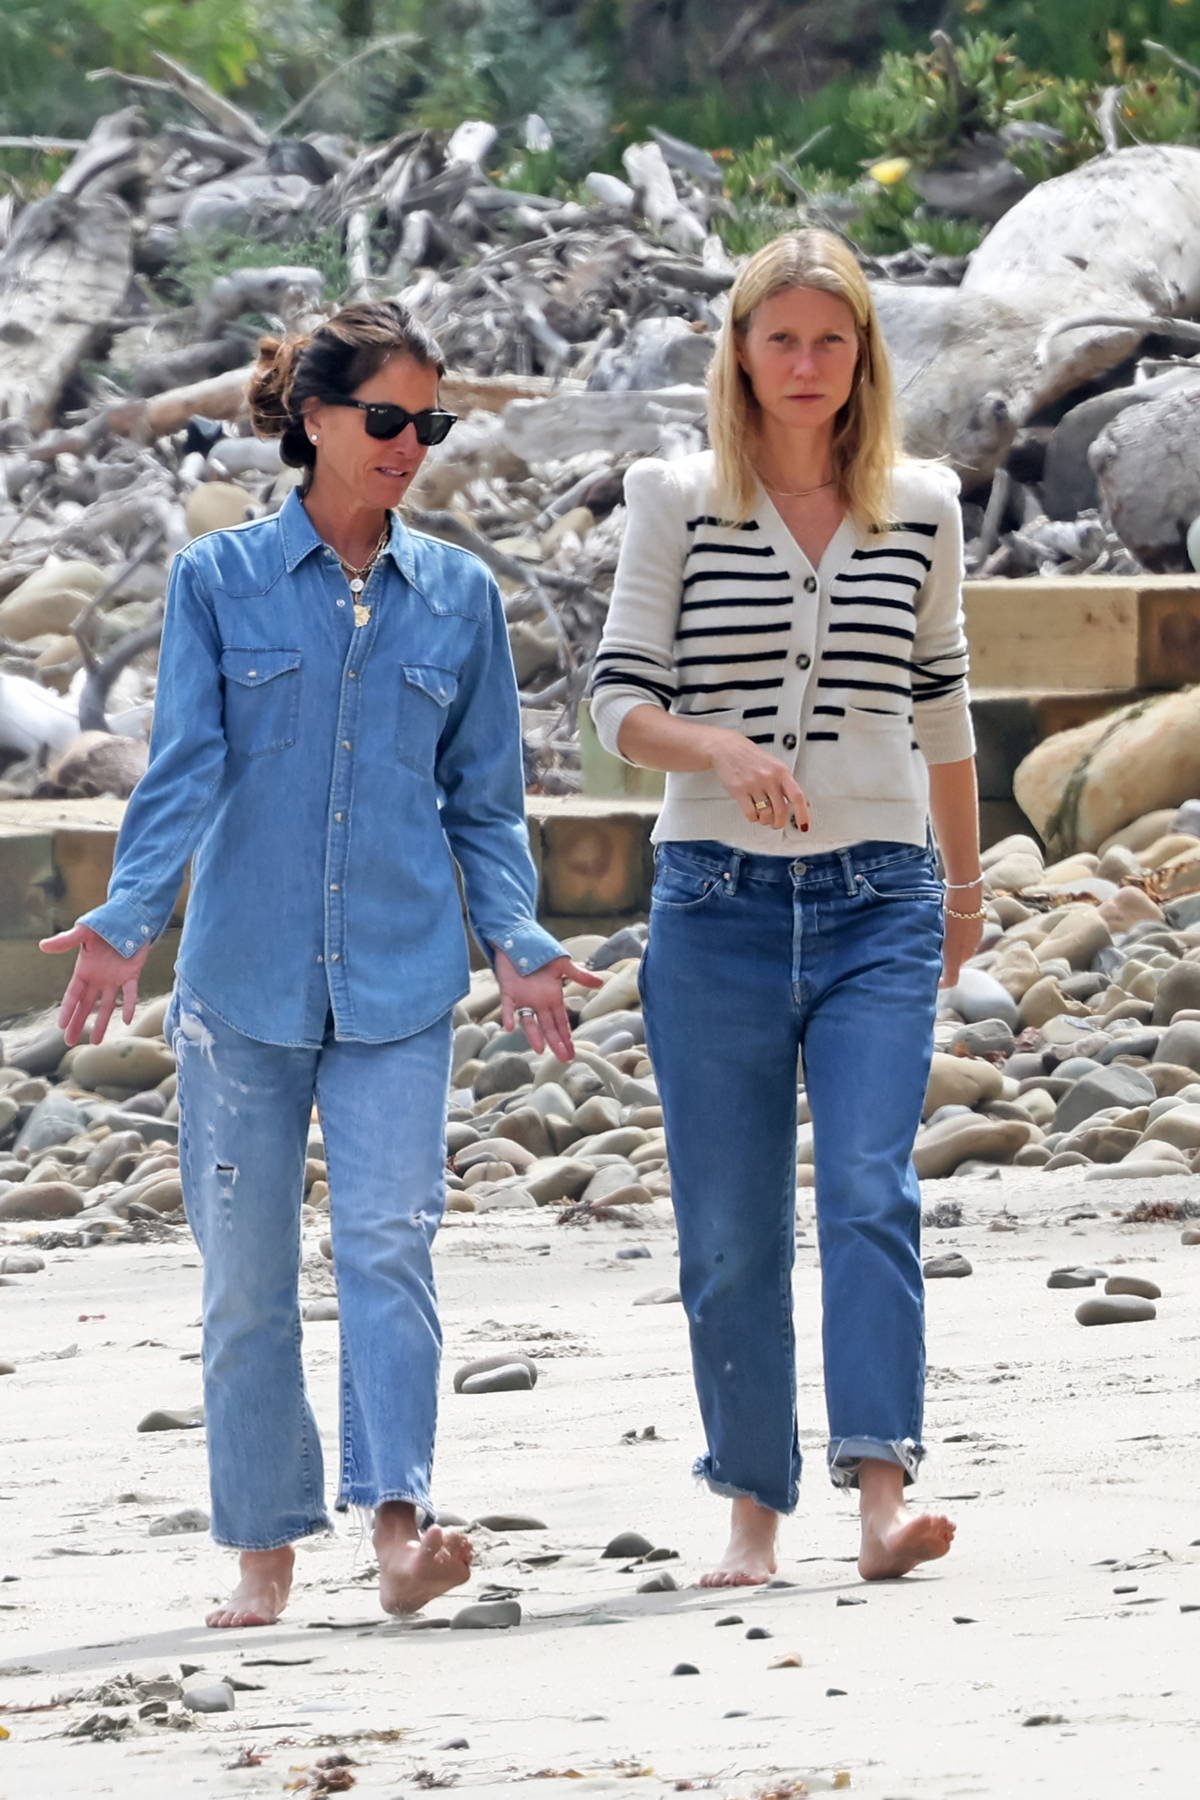 Gwyneth Paltrow takes a stroll on the beach after checking on the build of her eco-friendly mega mansion in Montecito, California